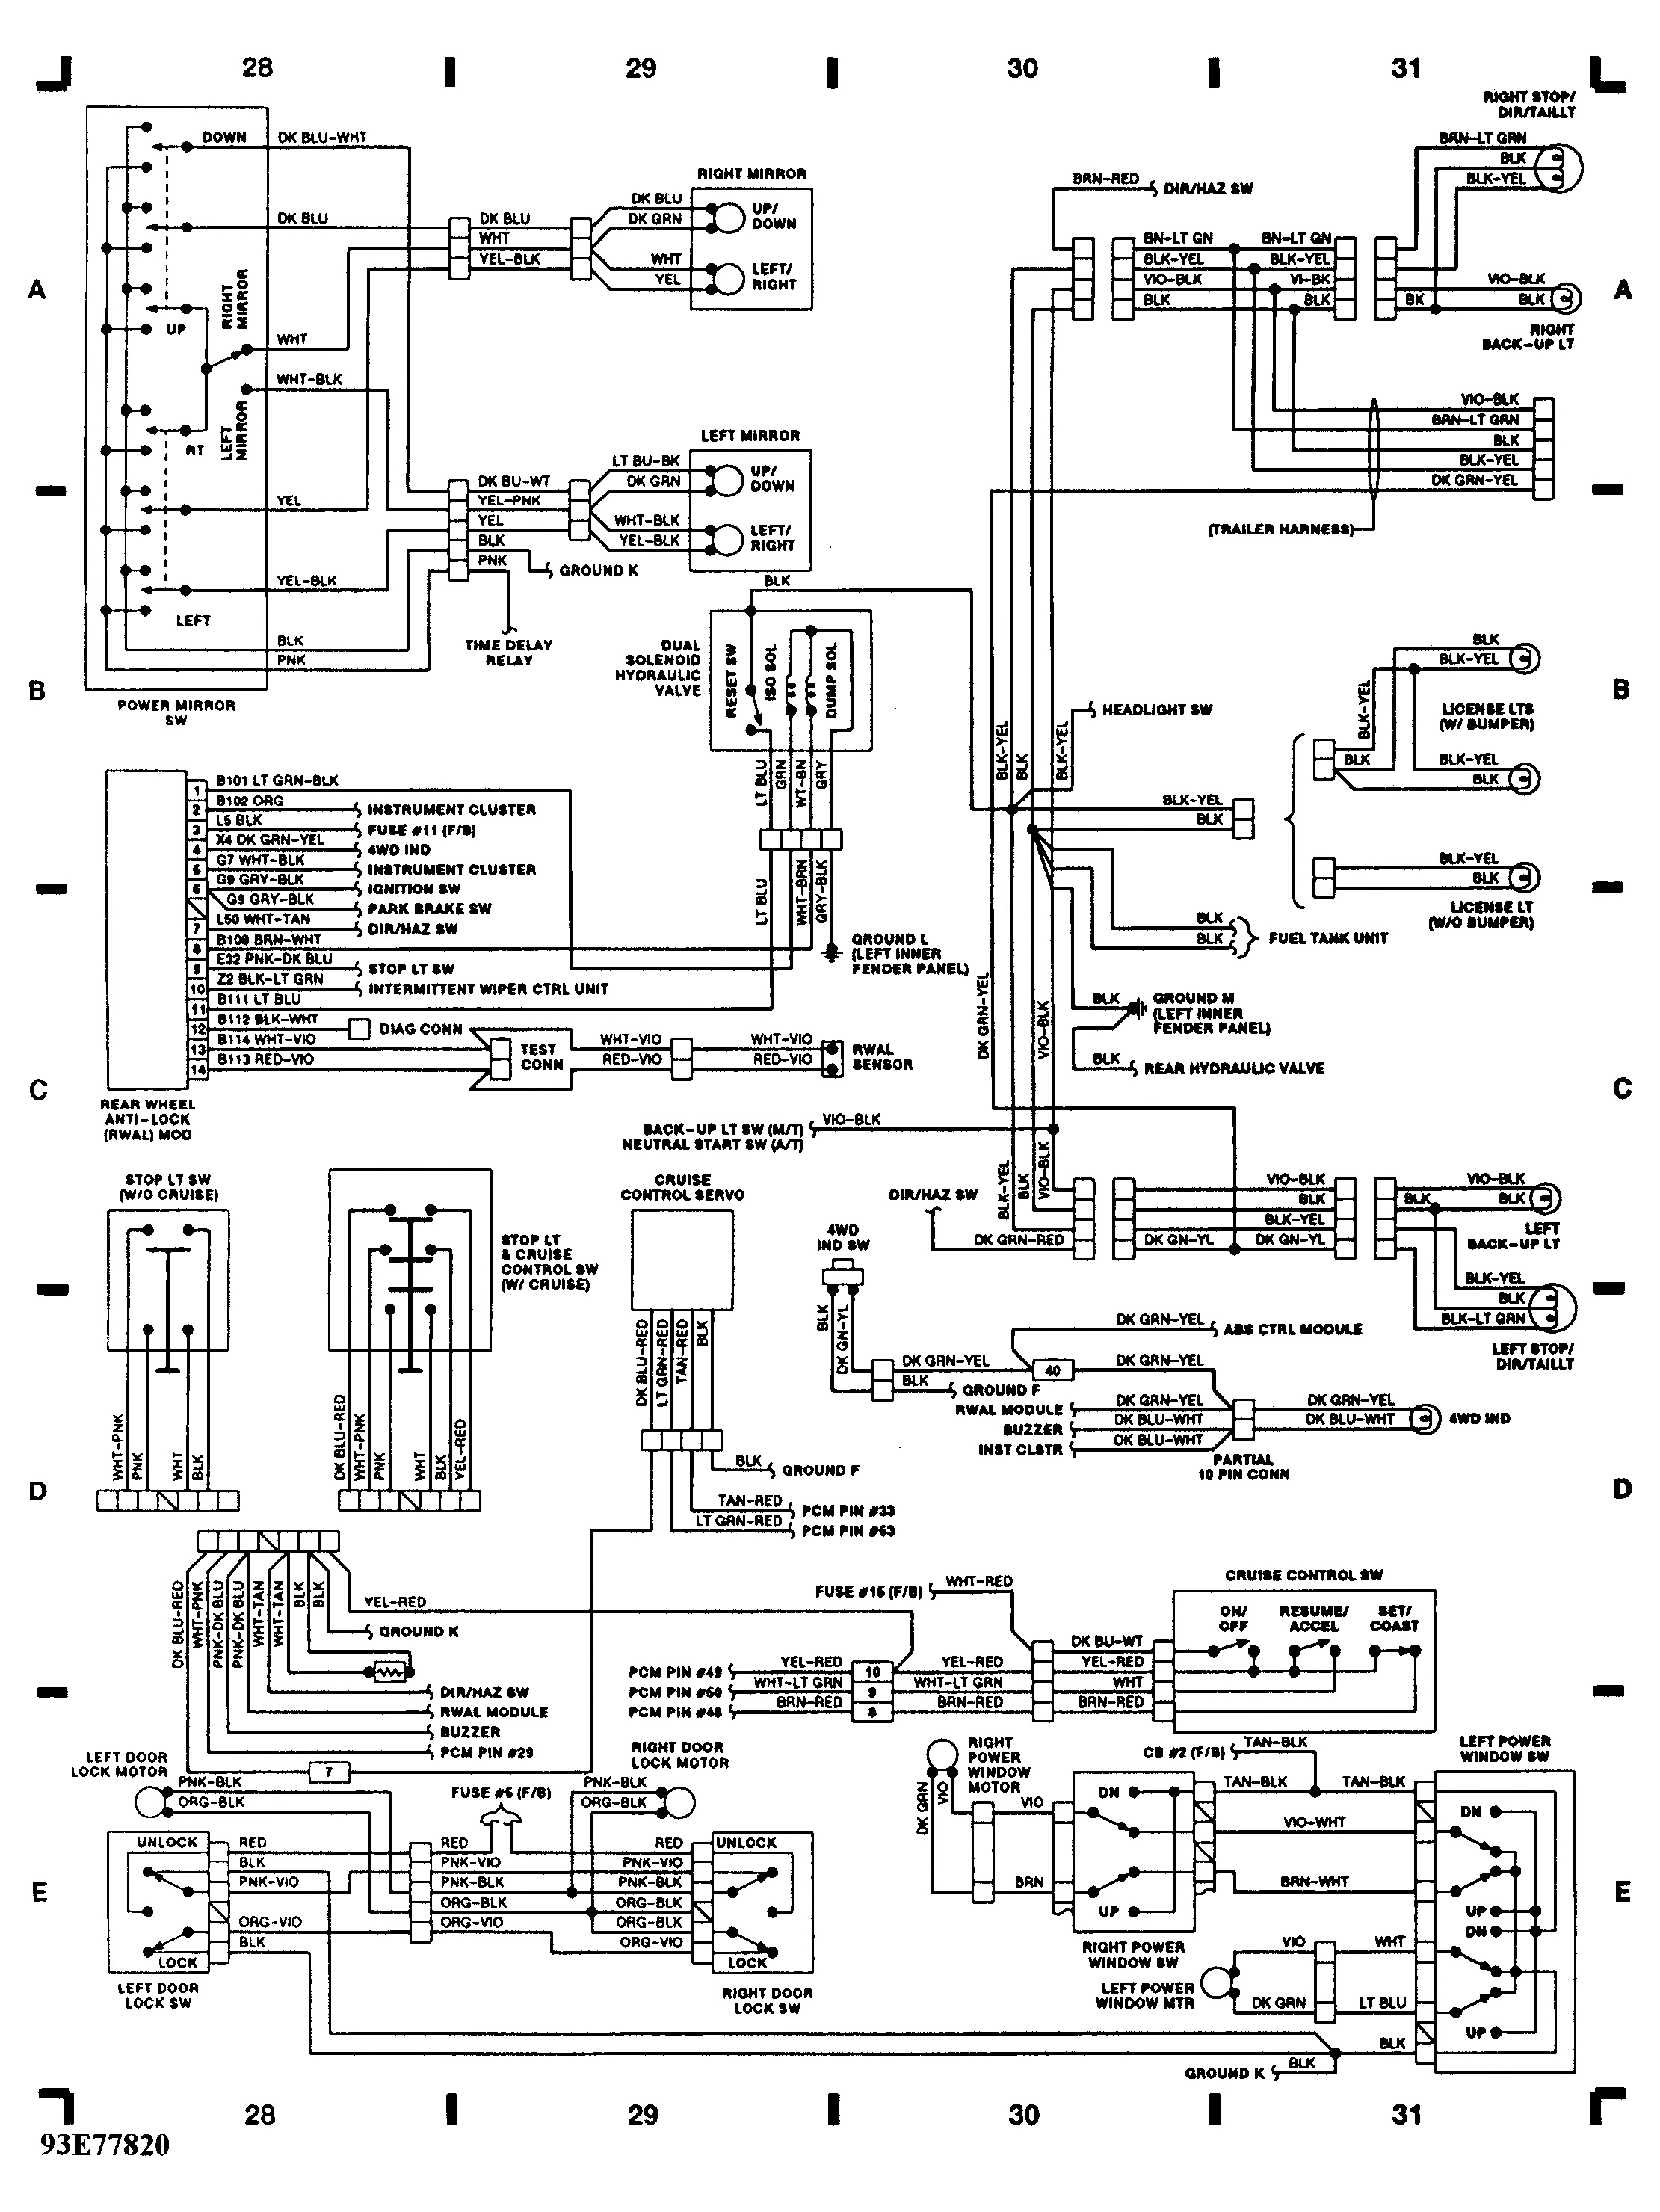 1999 Dodge Ram 2500 Dash Light Wiring Diagram Images Gallery